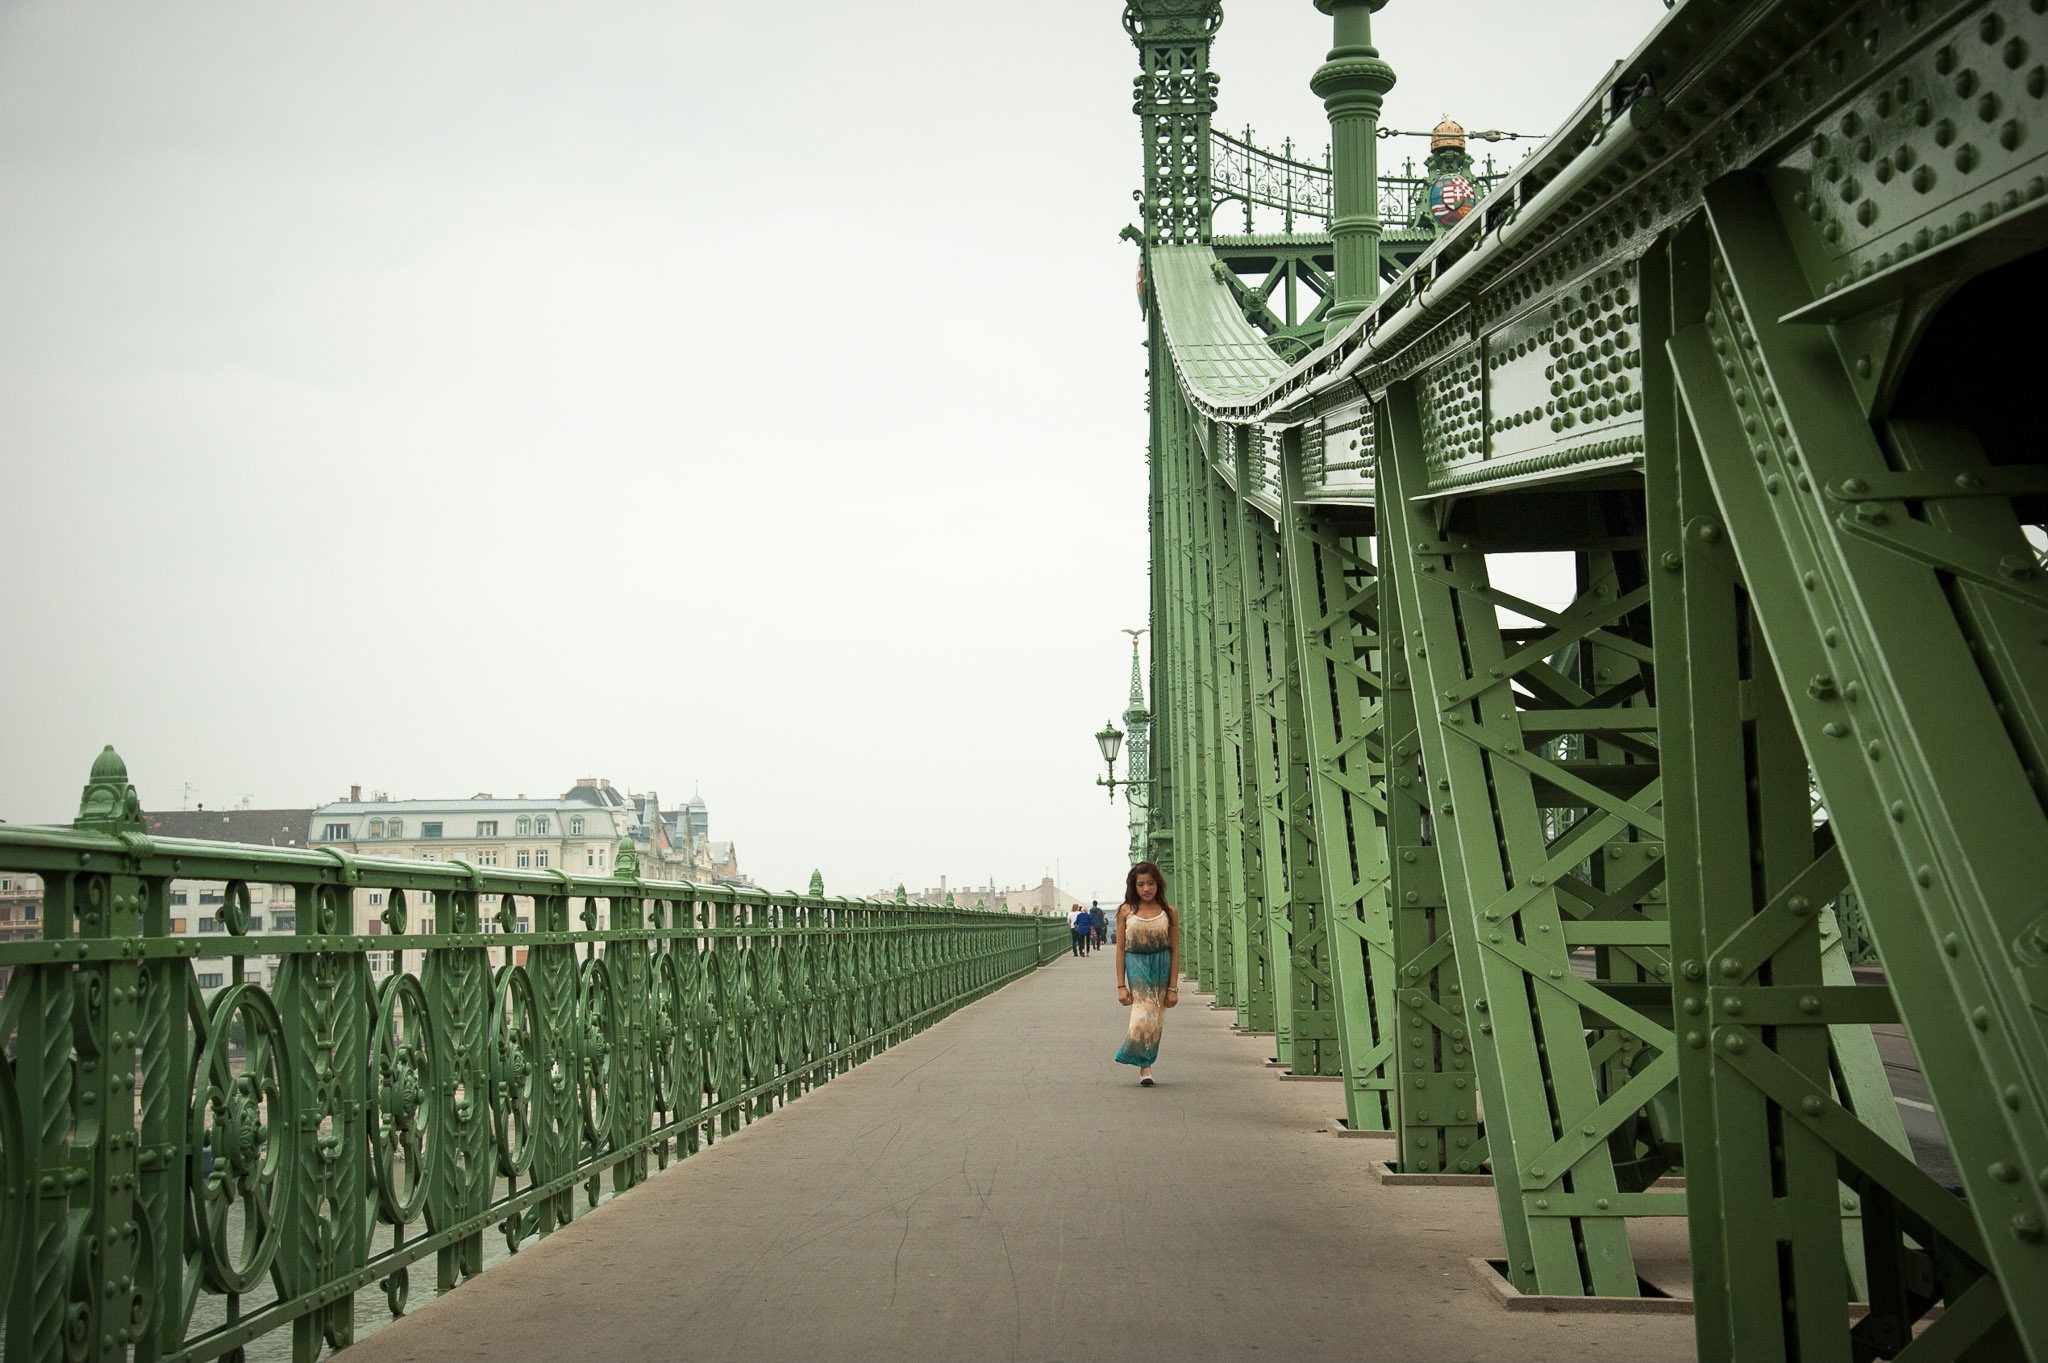 Walking across Liberty Bridge in Budapest, Hungary Nikon D700, 1/2000 sec, ƒ5.6, 50mm, ISO200